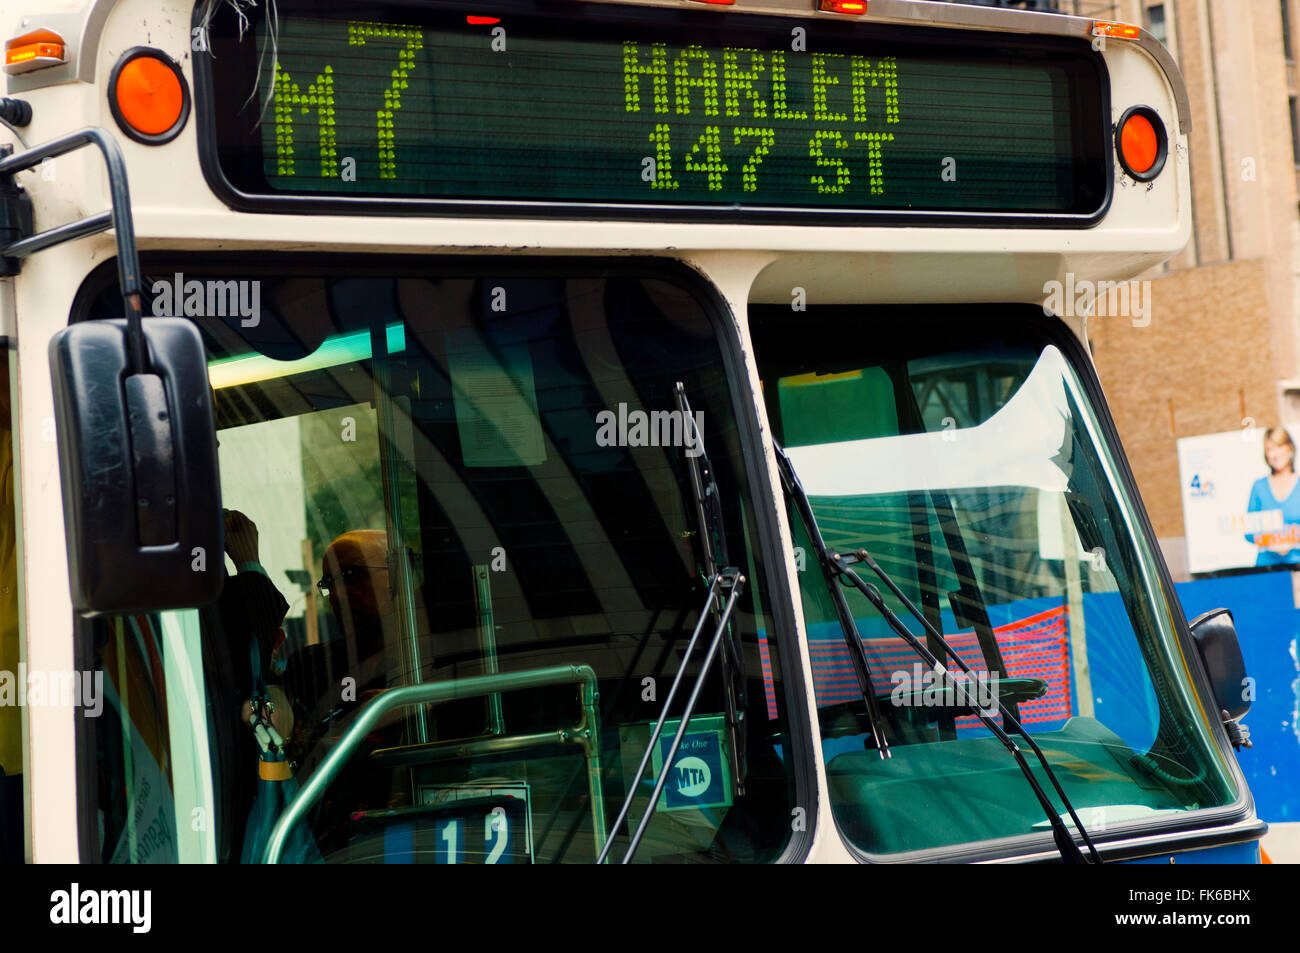 Image result for new york harlem bus